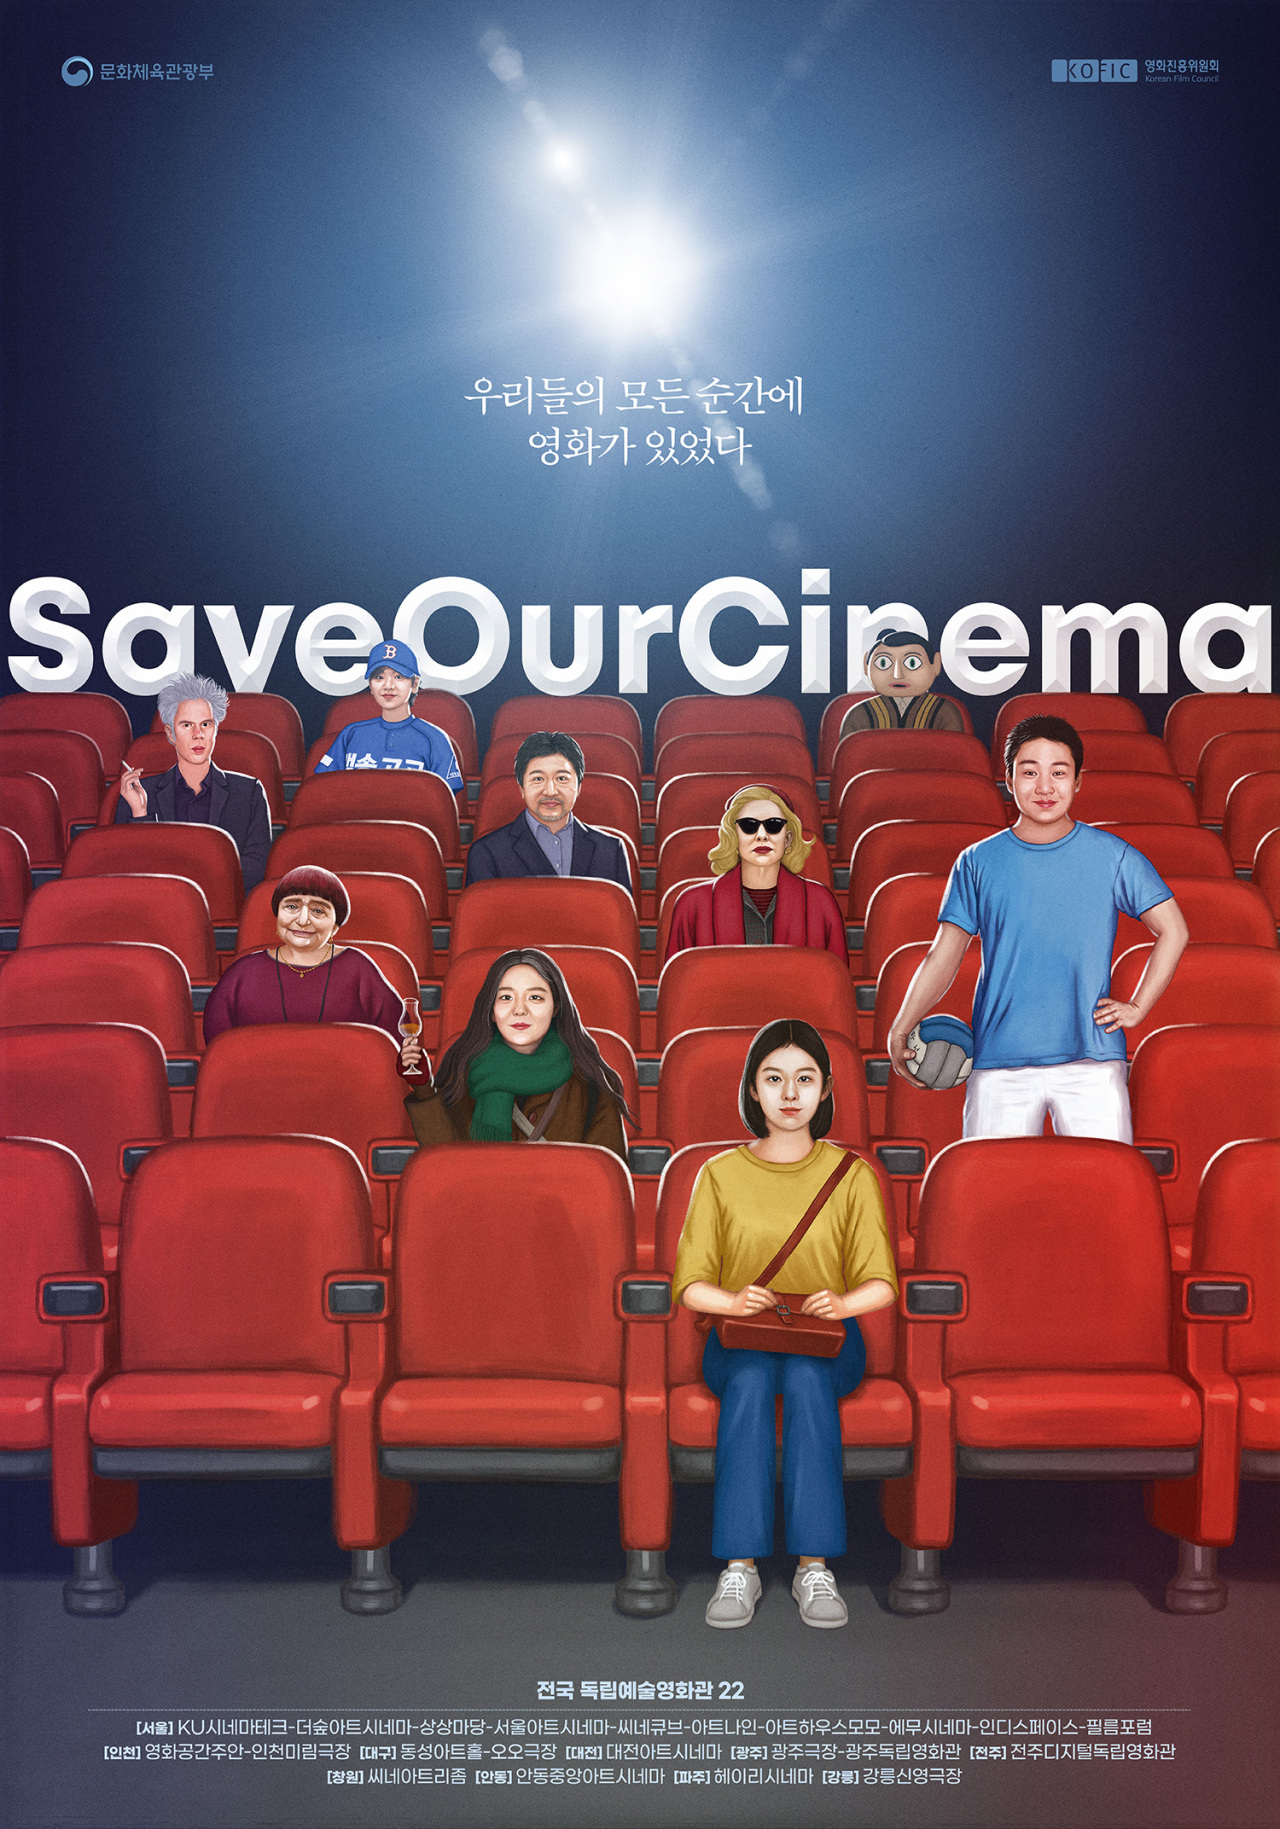 #SaveOurCinema campaign poster (Korean Arthouse Cinema Association)